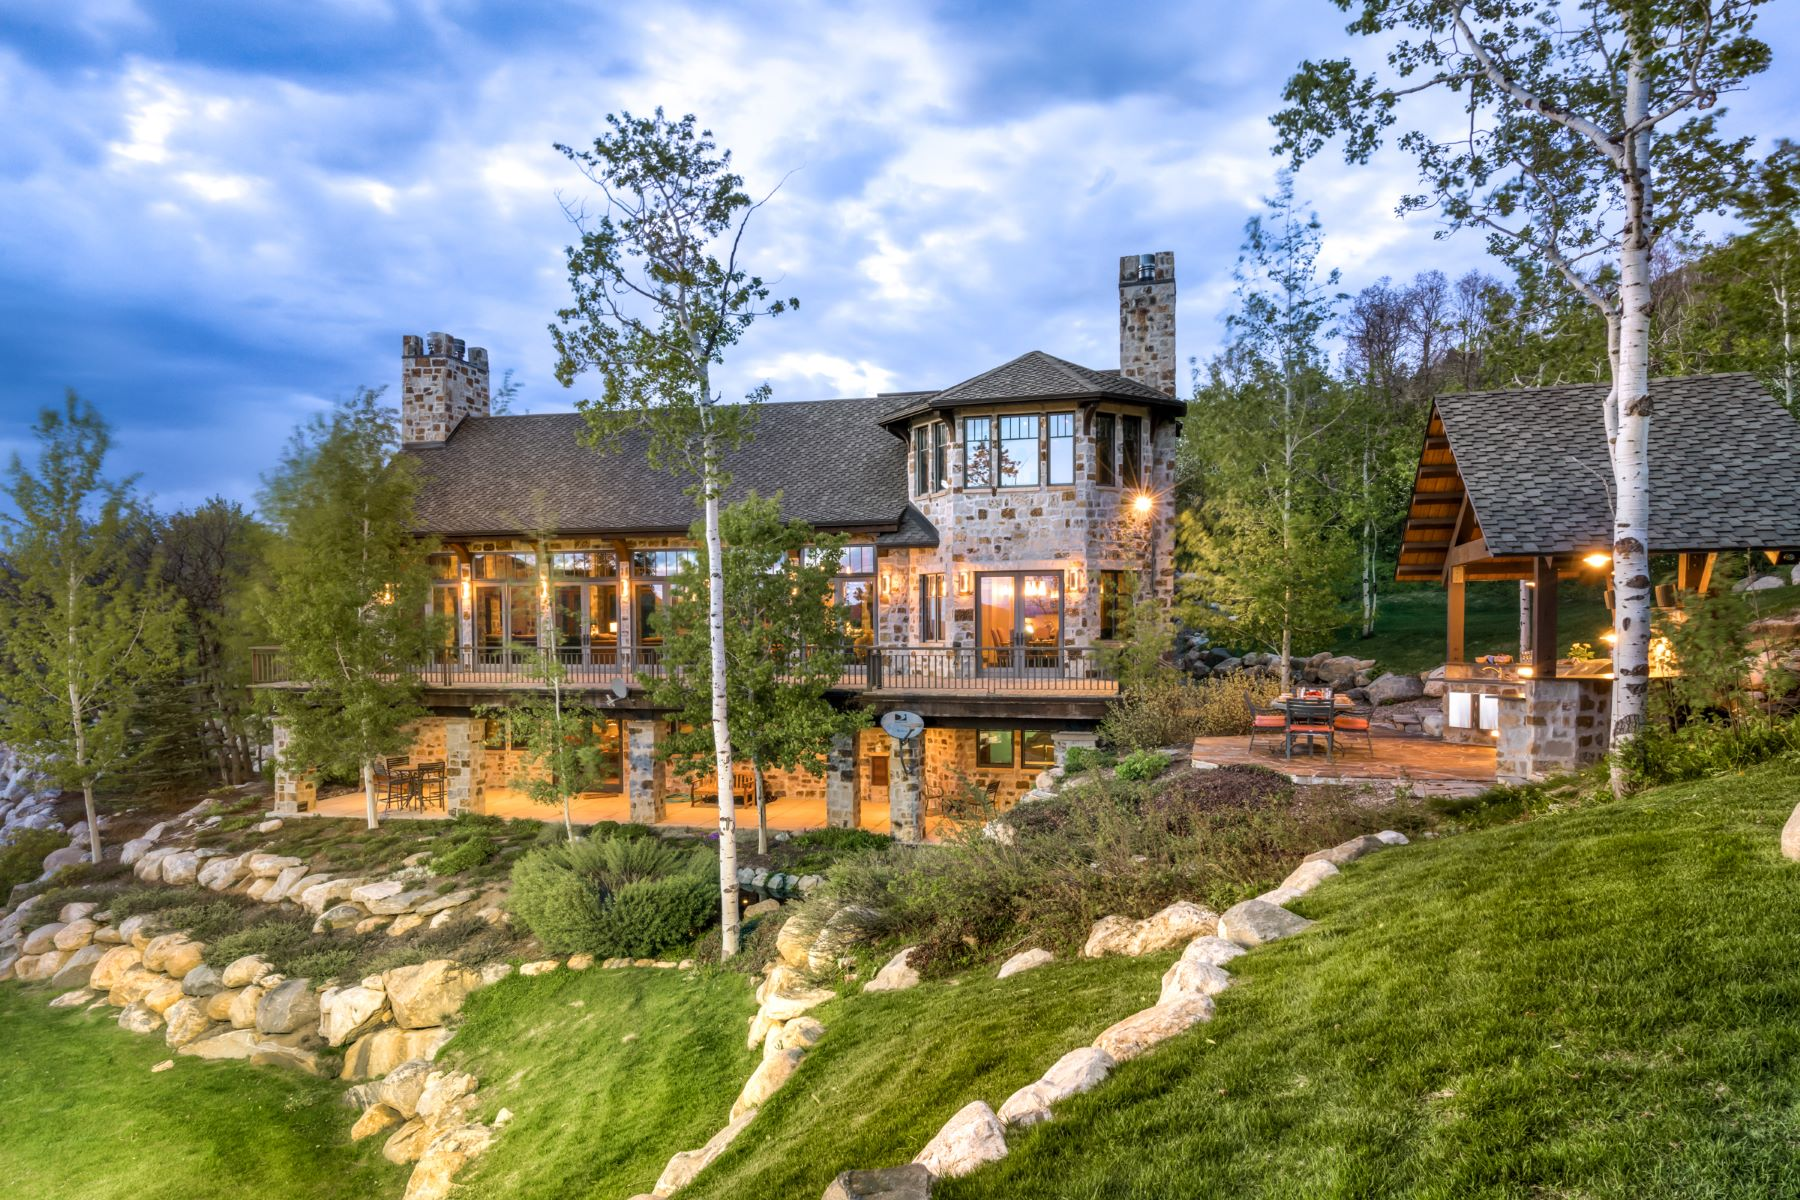 Casa Unifamiliar por un Venta en Modern Mountain Luxury 120 Deer Clover Lane Steamboat Springs, Colorado, 80487 Estados Unidos